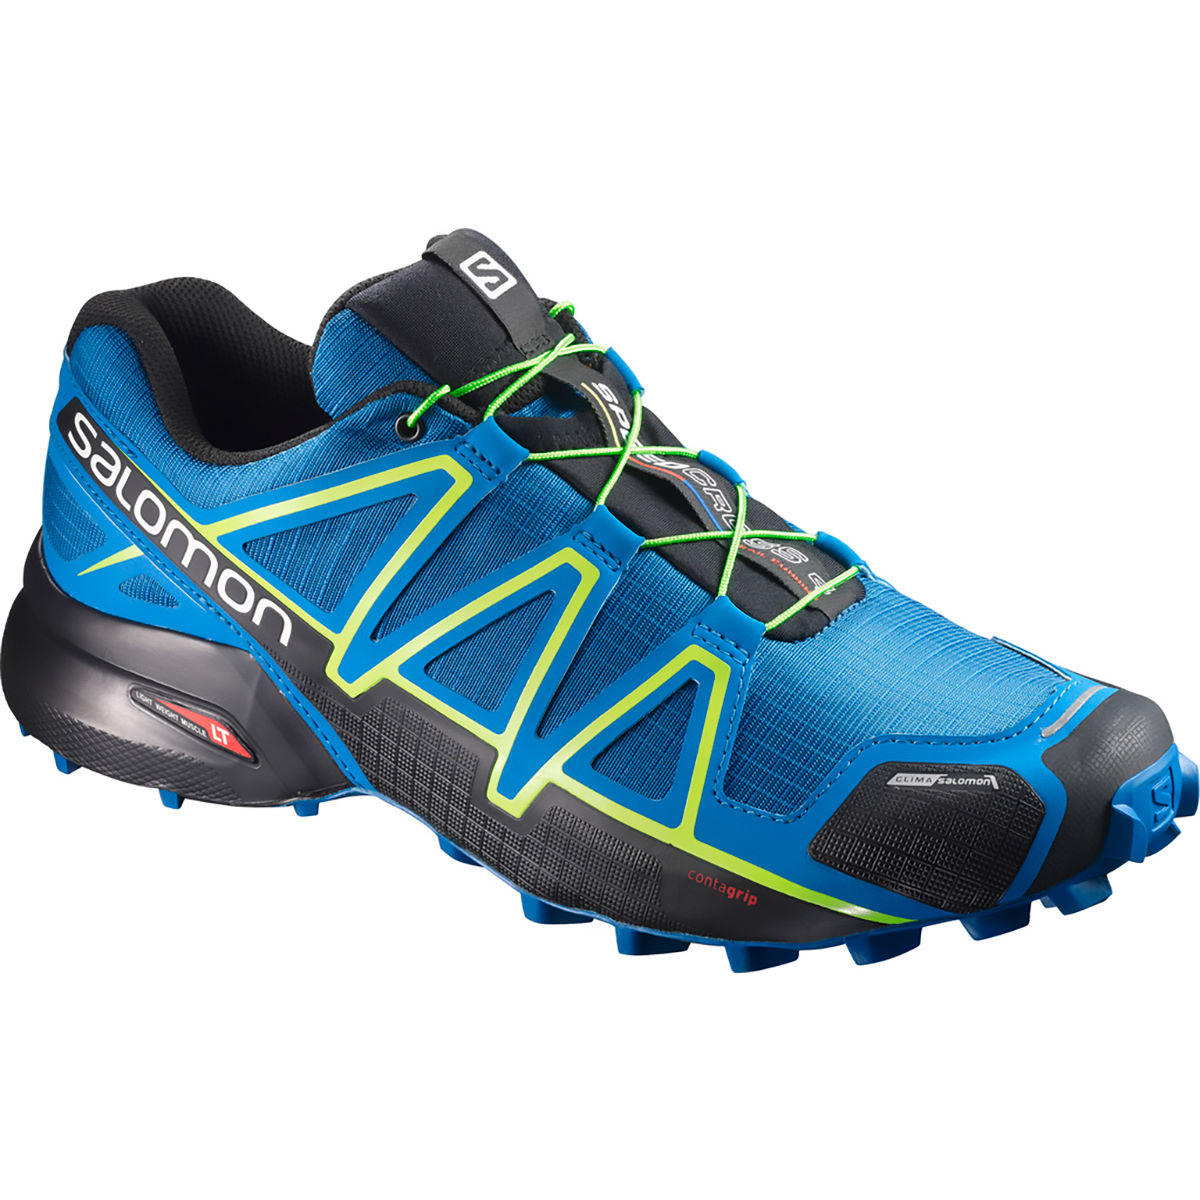 Zapatillas Salomon Speedcross 4 CS - Zapatillas de trail